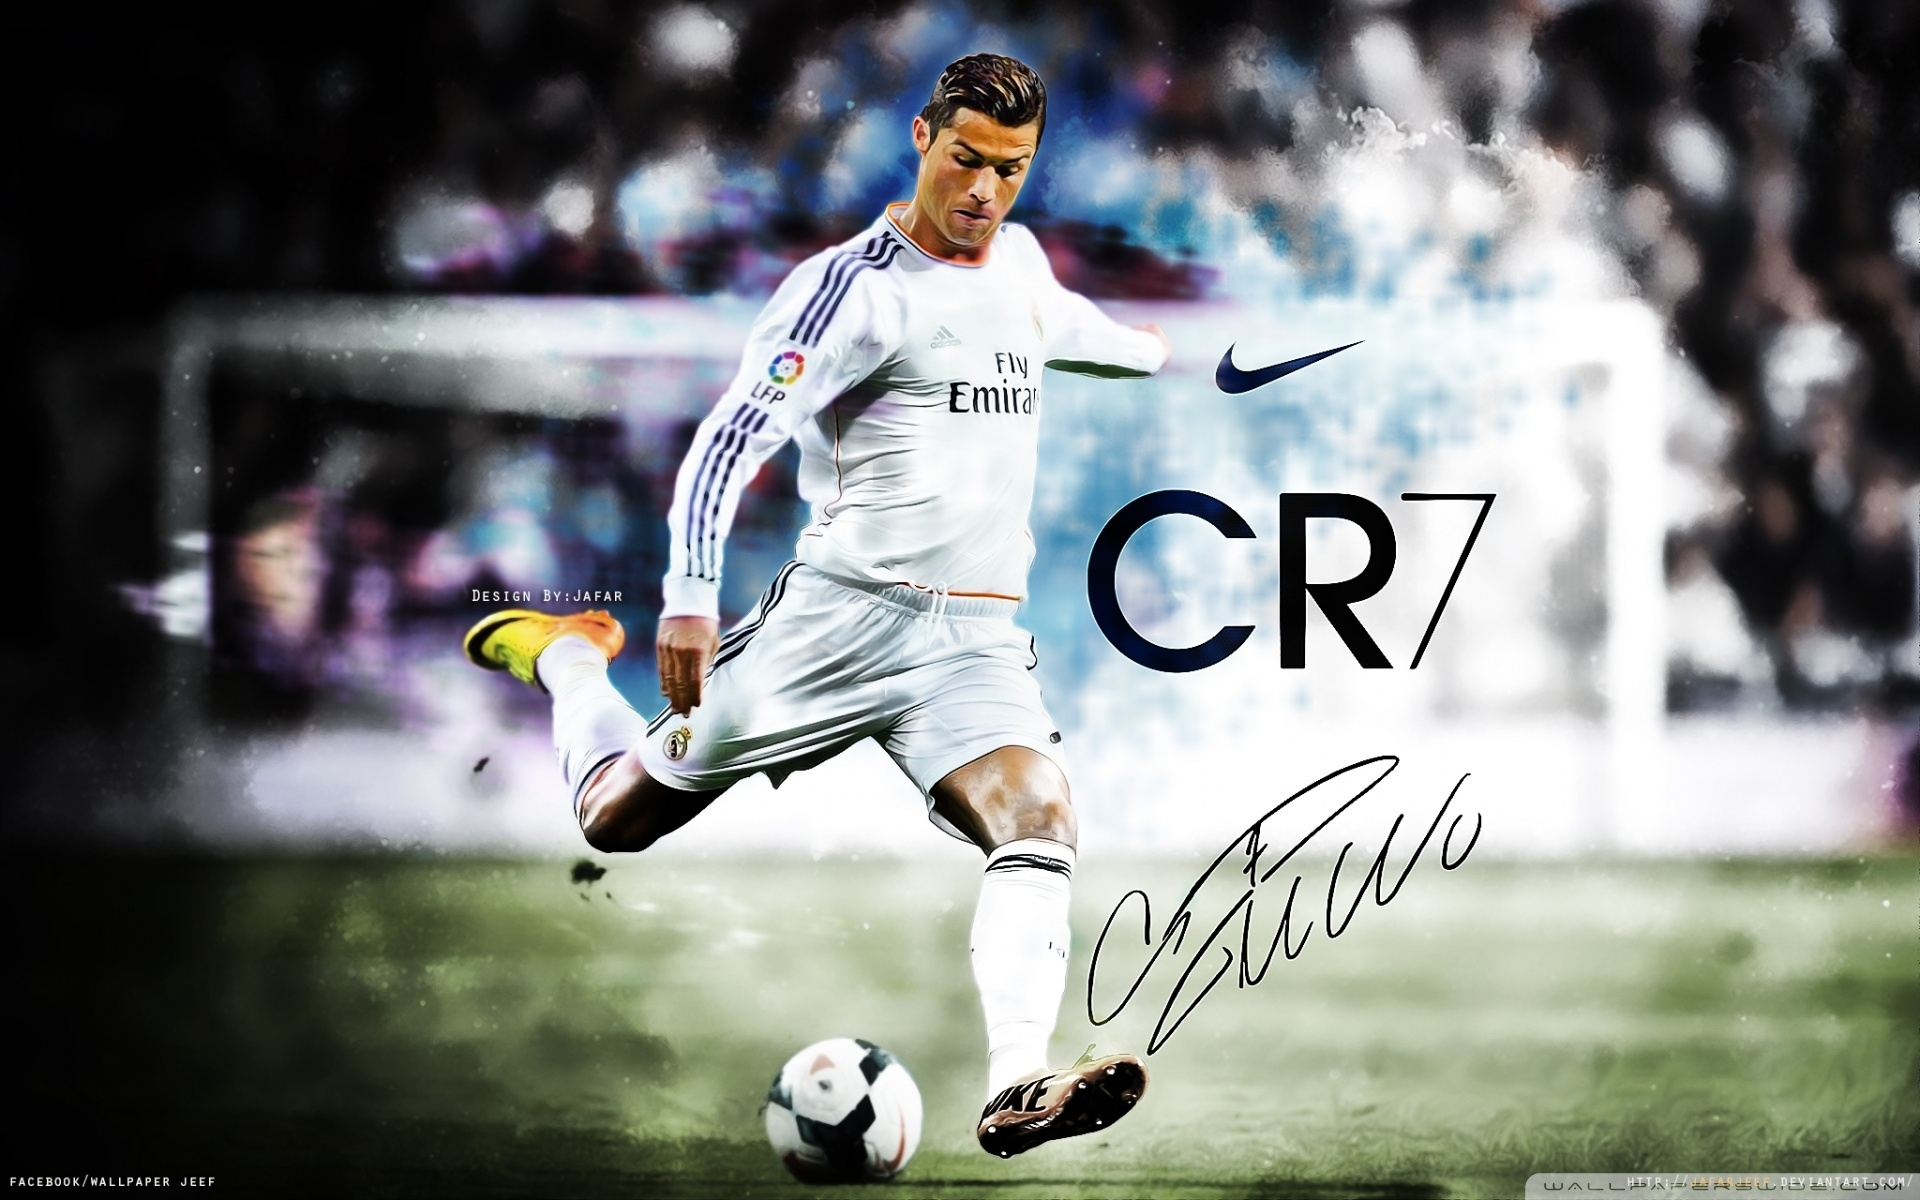 10 Best Real Madrid Wallpaper 2014 FULL HD 1080p For PC Background